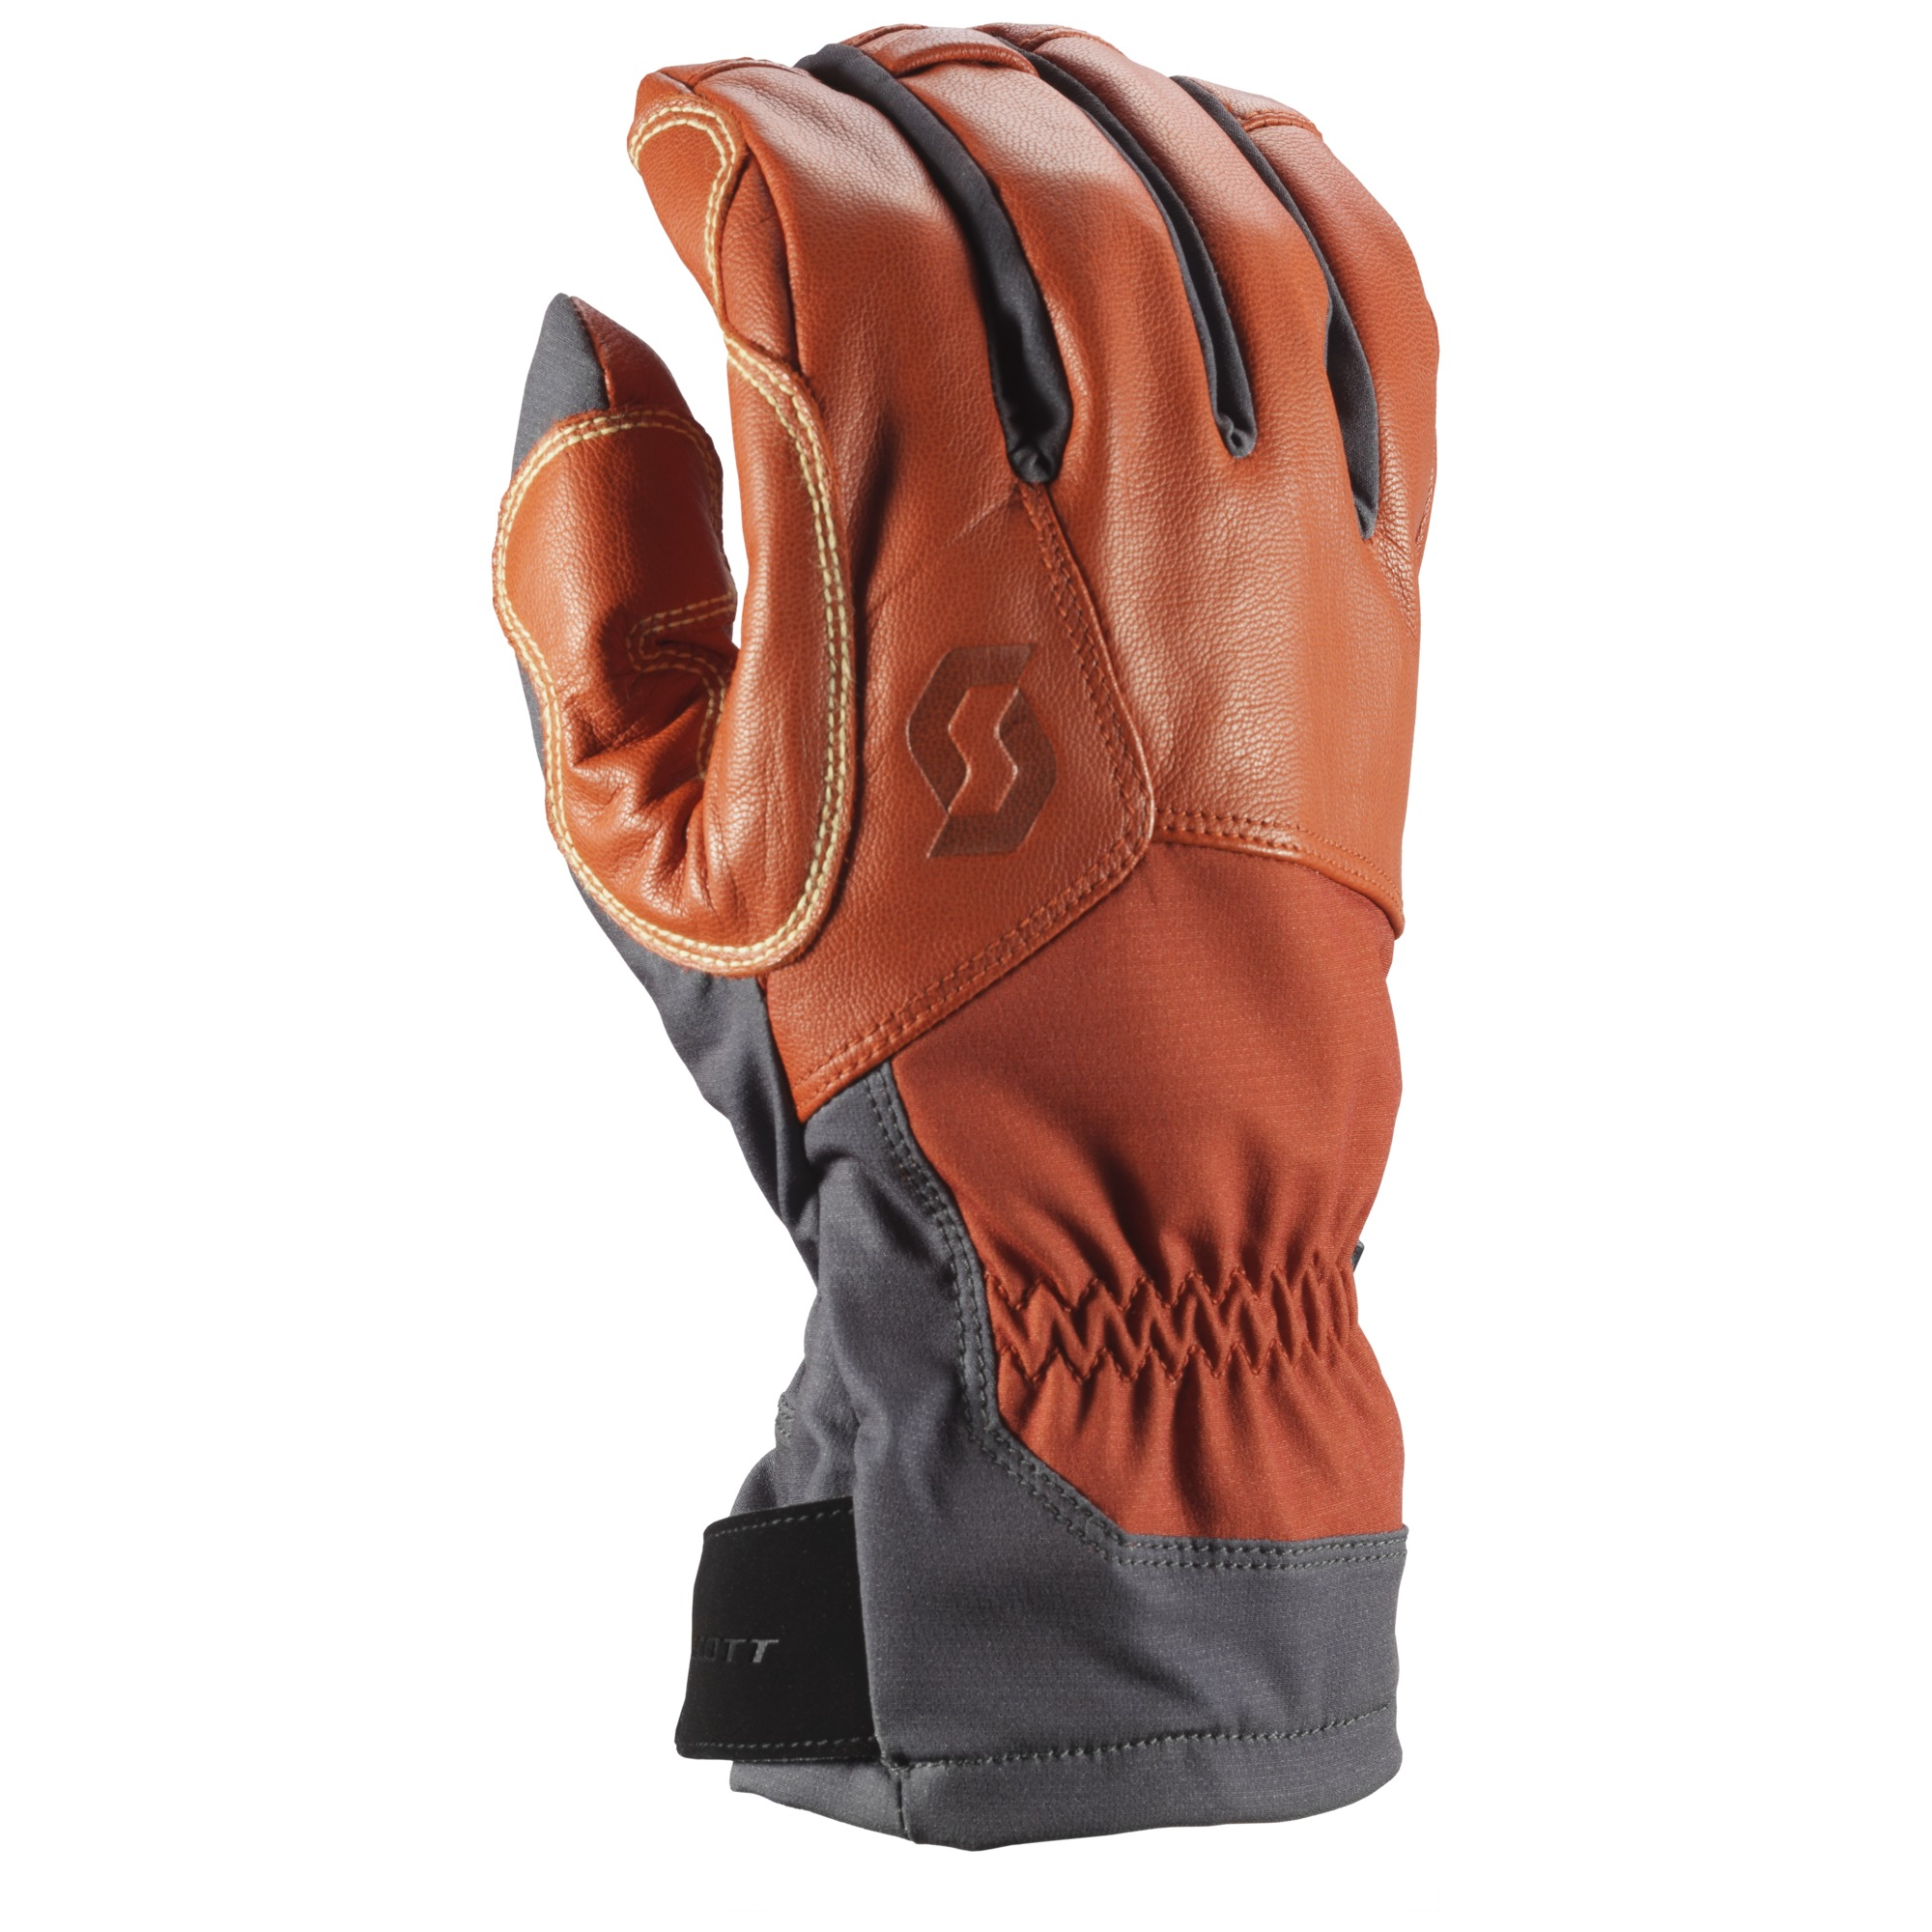 GUANTI DA NEVE SCOTT EXPLORAIR TECH GLOVE 244442 dark grey burnt orange.jpg